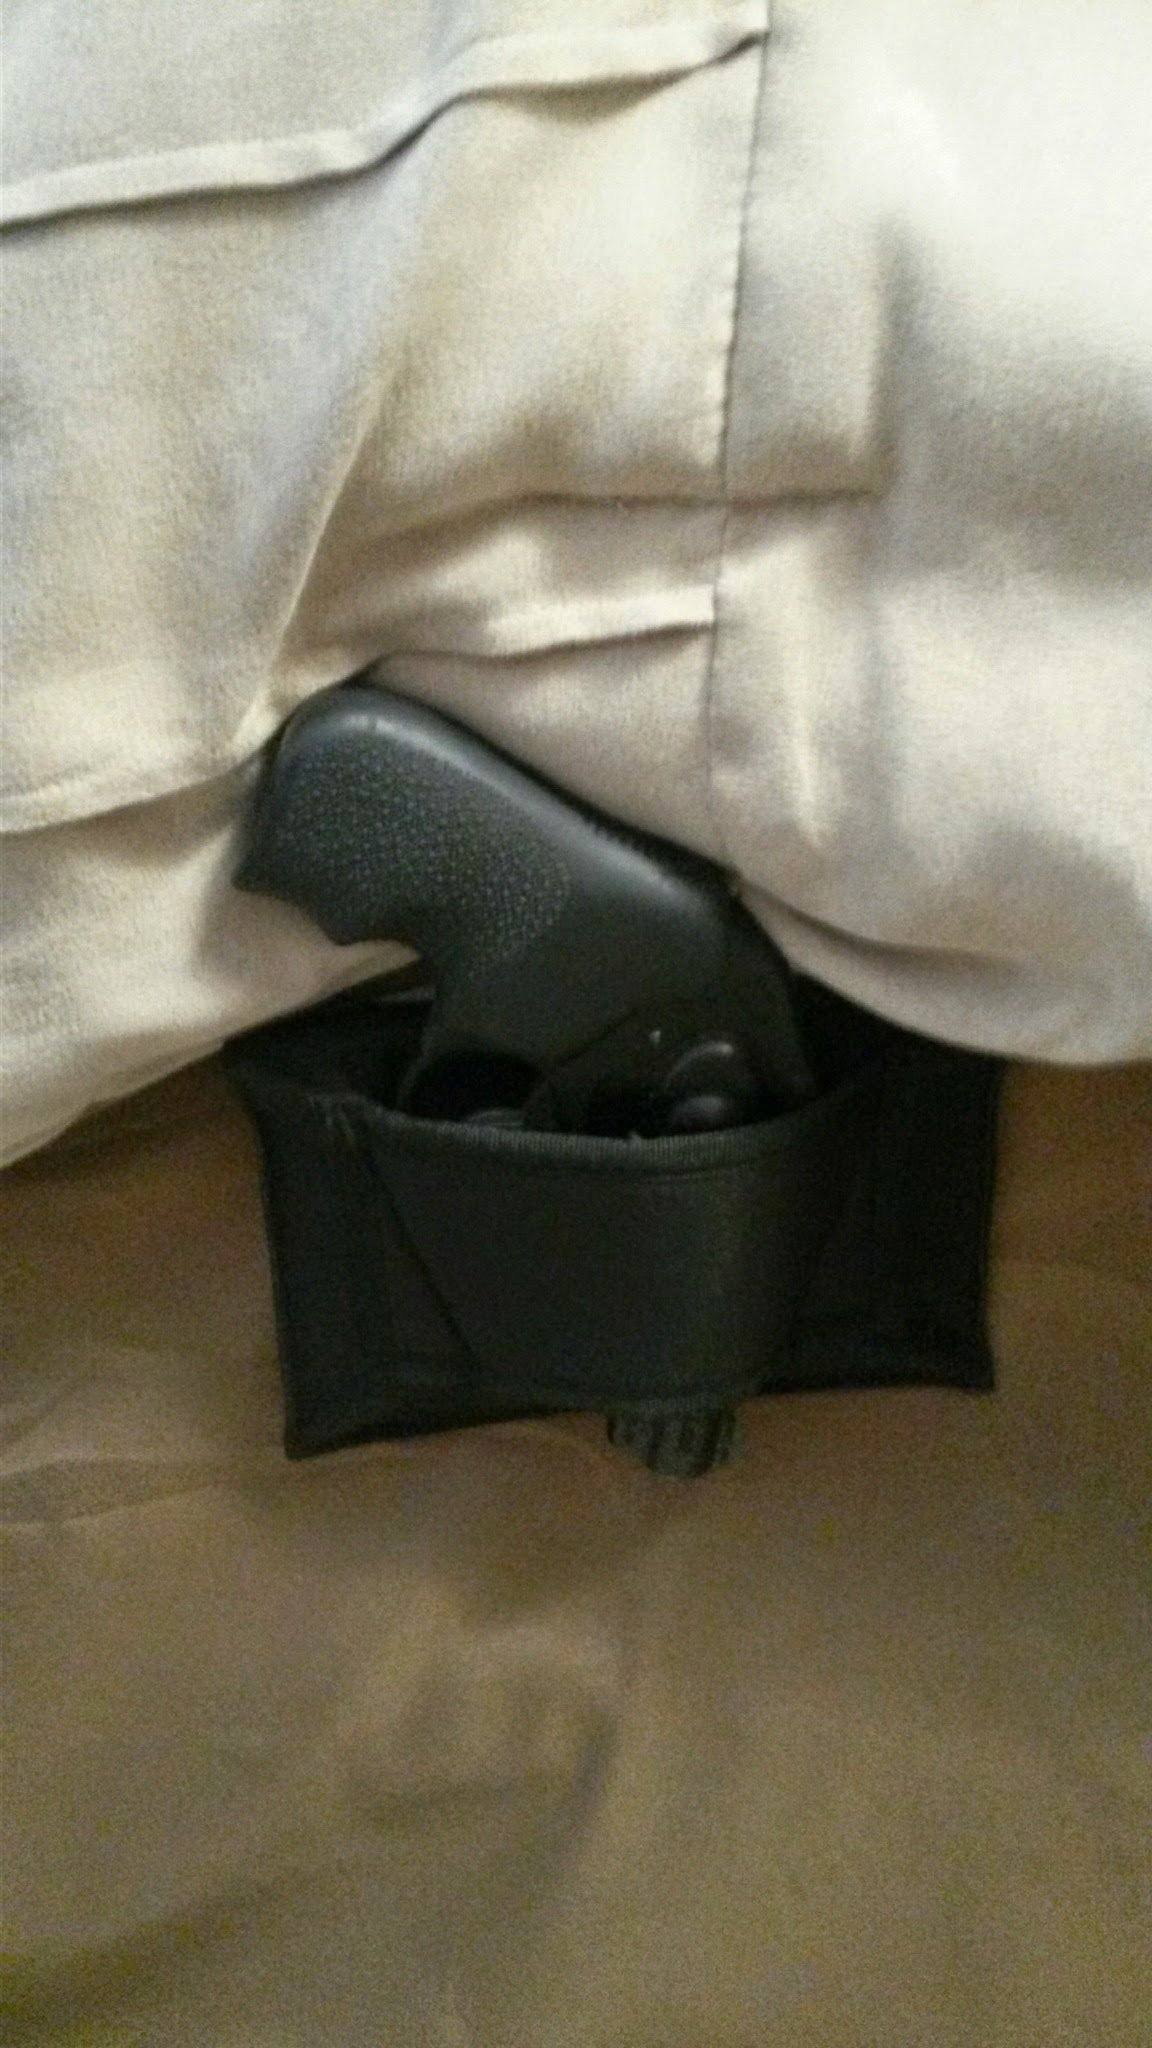 Don't Tread on Me Conceal and Carry Holsters BH1 DTOM Bedside, Bed Side Holster-Ambidextrous by Don't Tread on Me Conceal and Carry Holsters